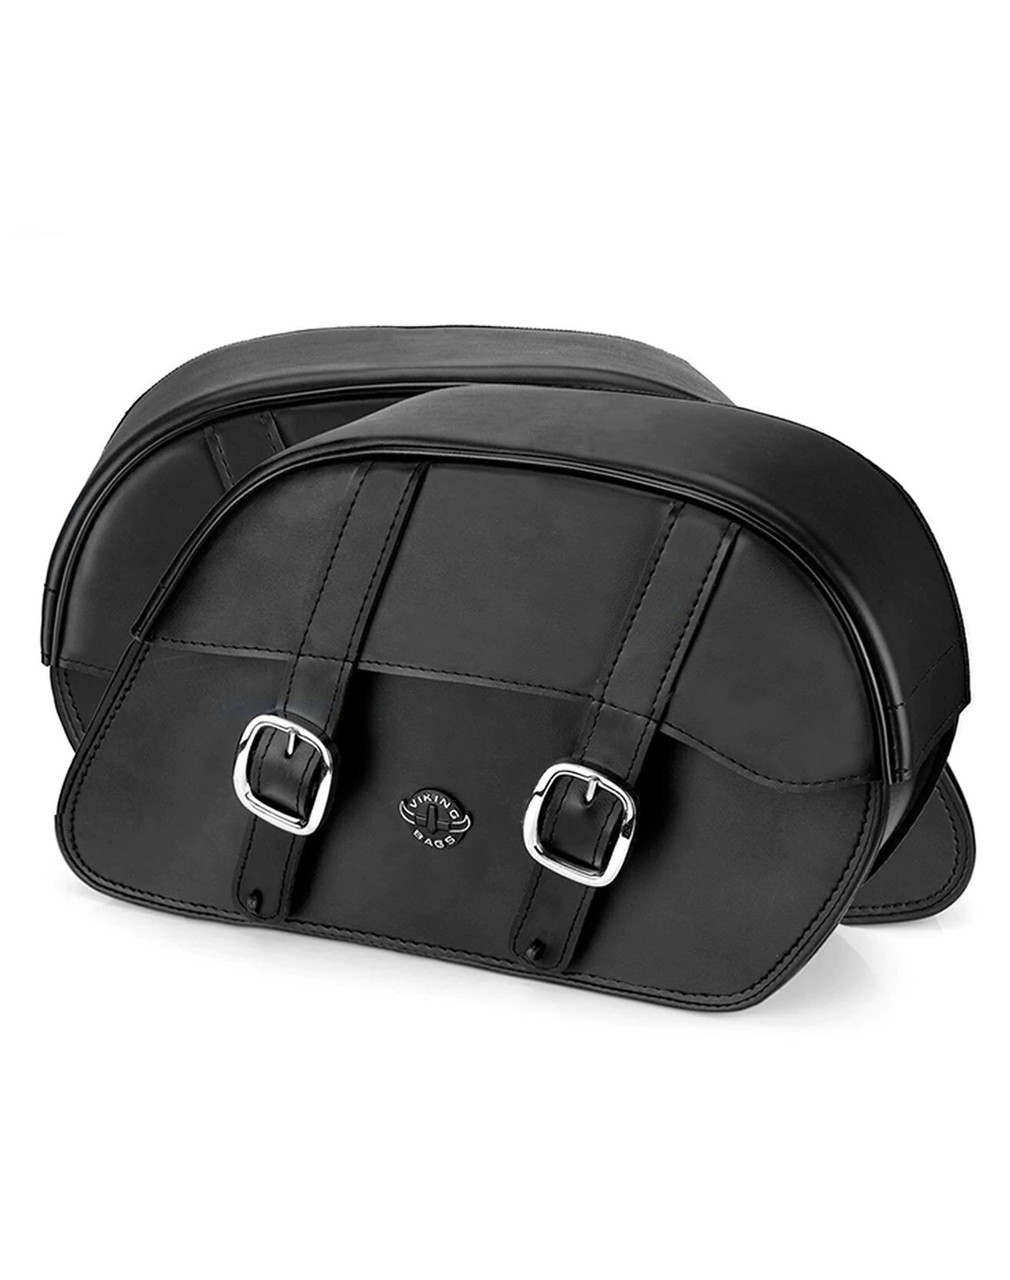 Indian Scout Sixty Slanted Large Motorcycle Saddlebags Both Bags View